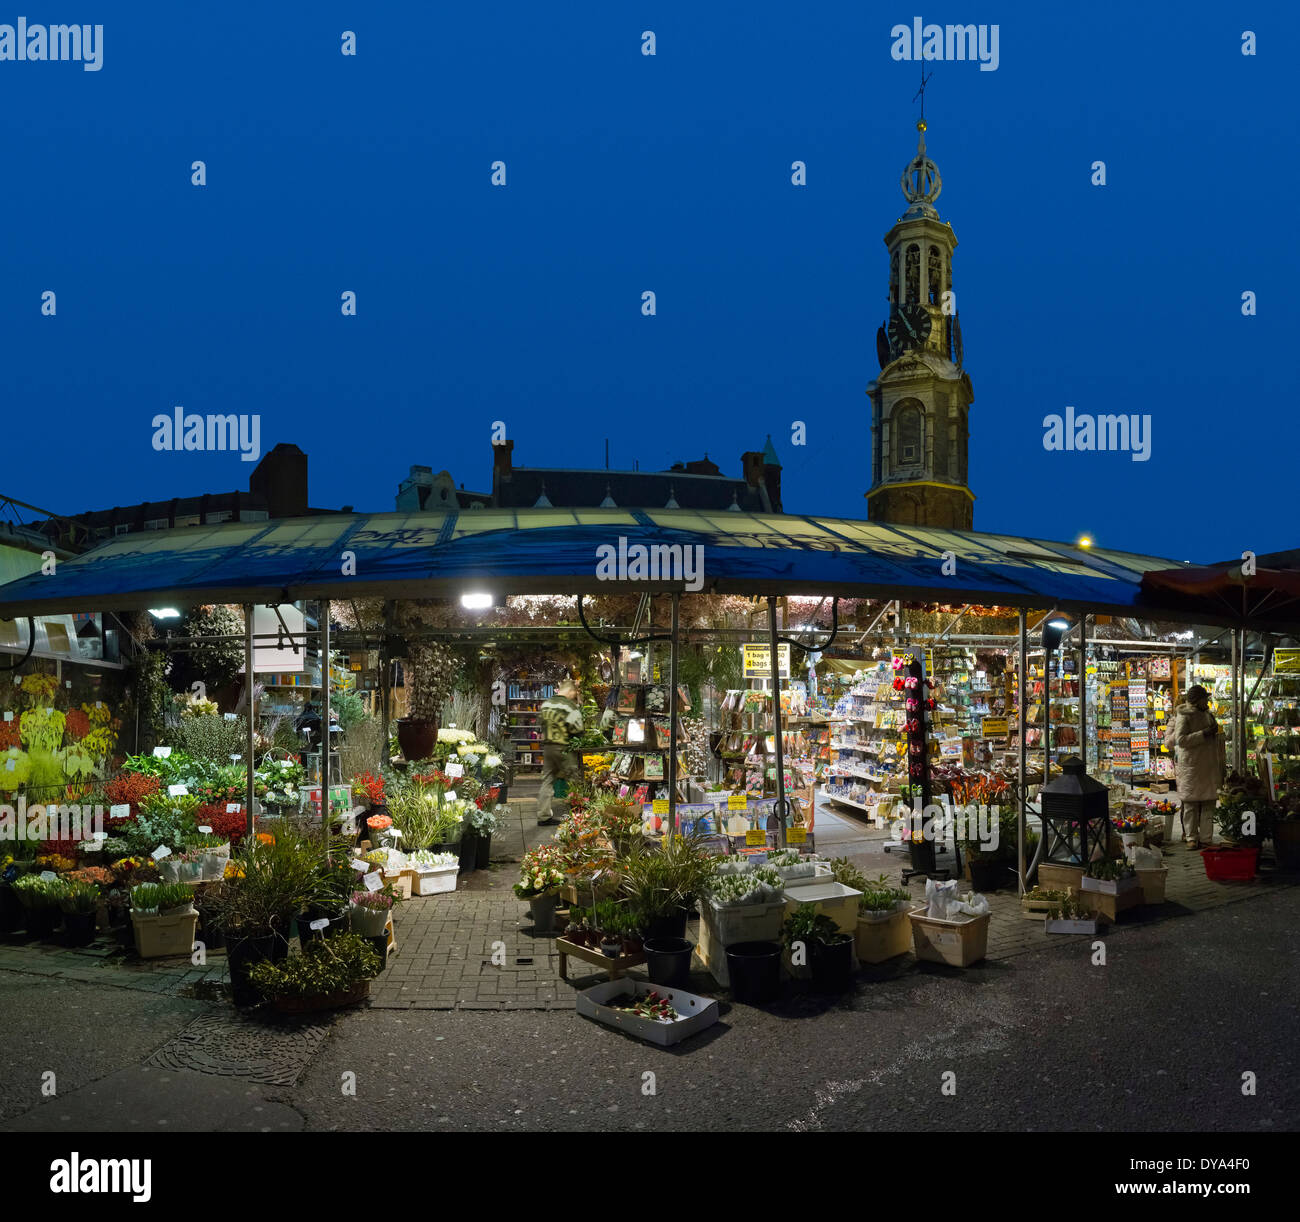 Netherlands, Holland, Europe, Amsterdam, North Holland, city, village, flowers, winter, evening, Flower market, market, Singel - Stock Image